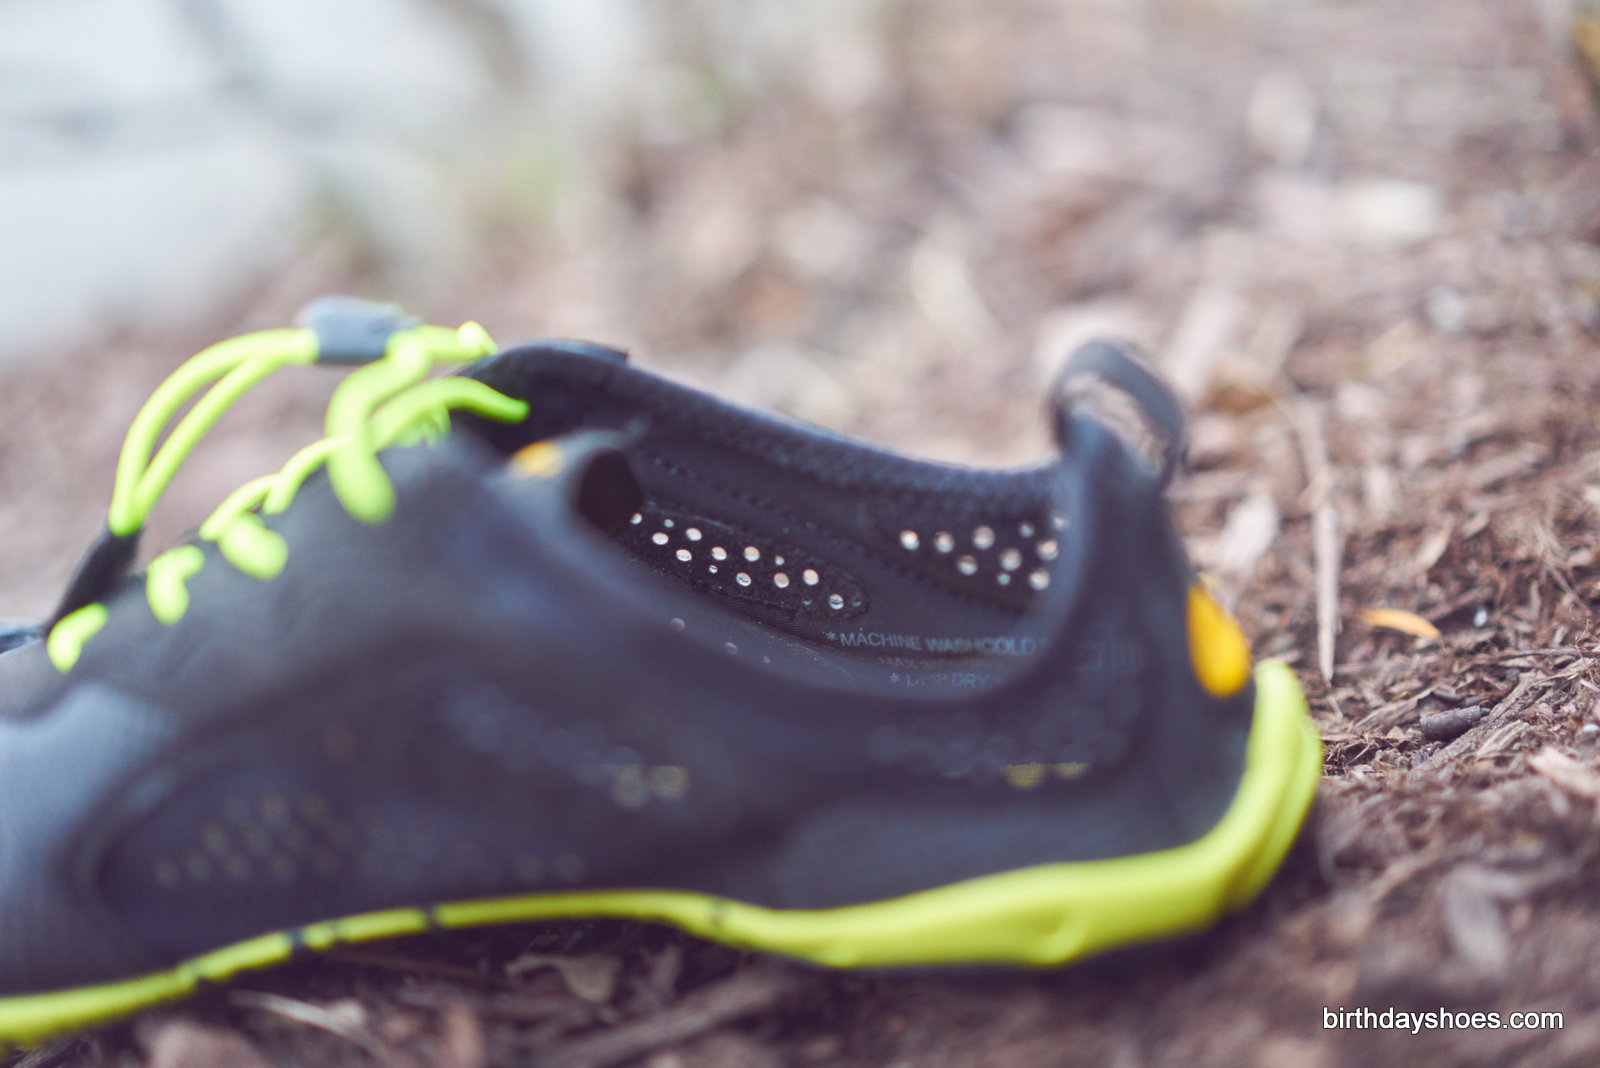 The most breathable uppers from Vibram to date